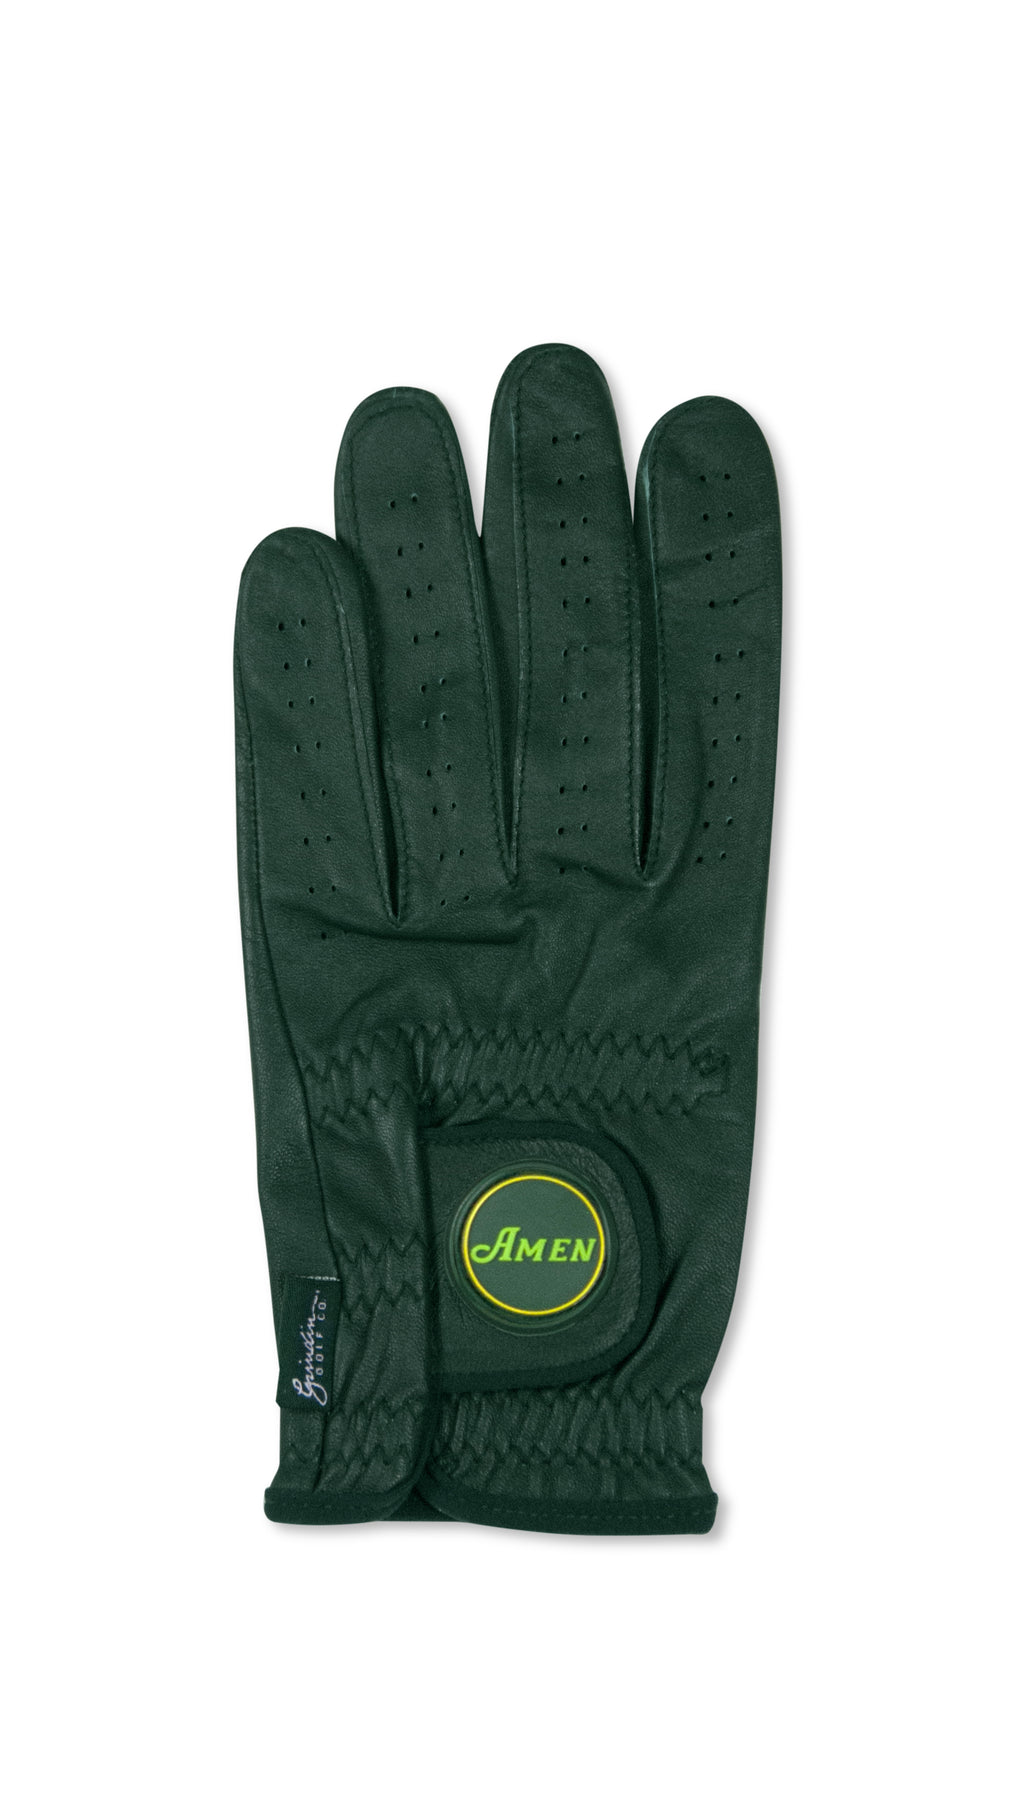 Amen Logo - Green Cabretta Leather Golf Glove